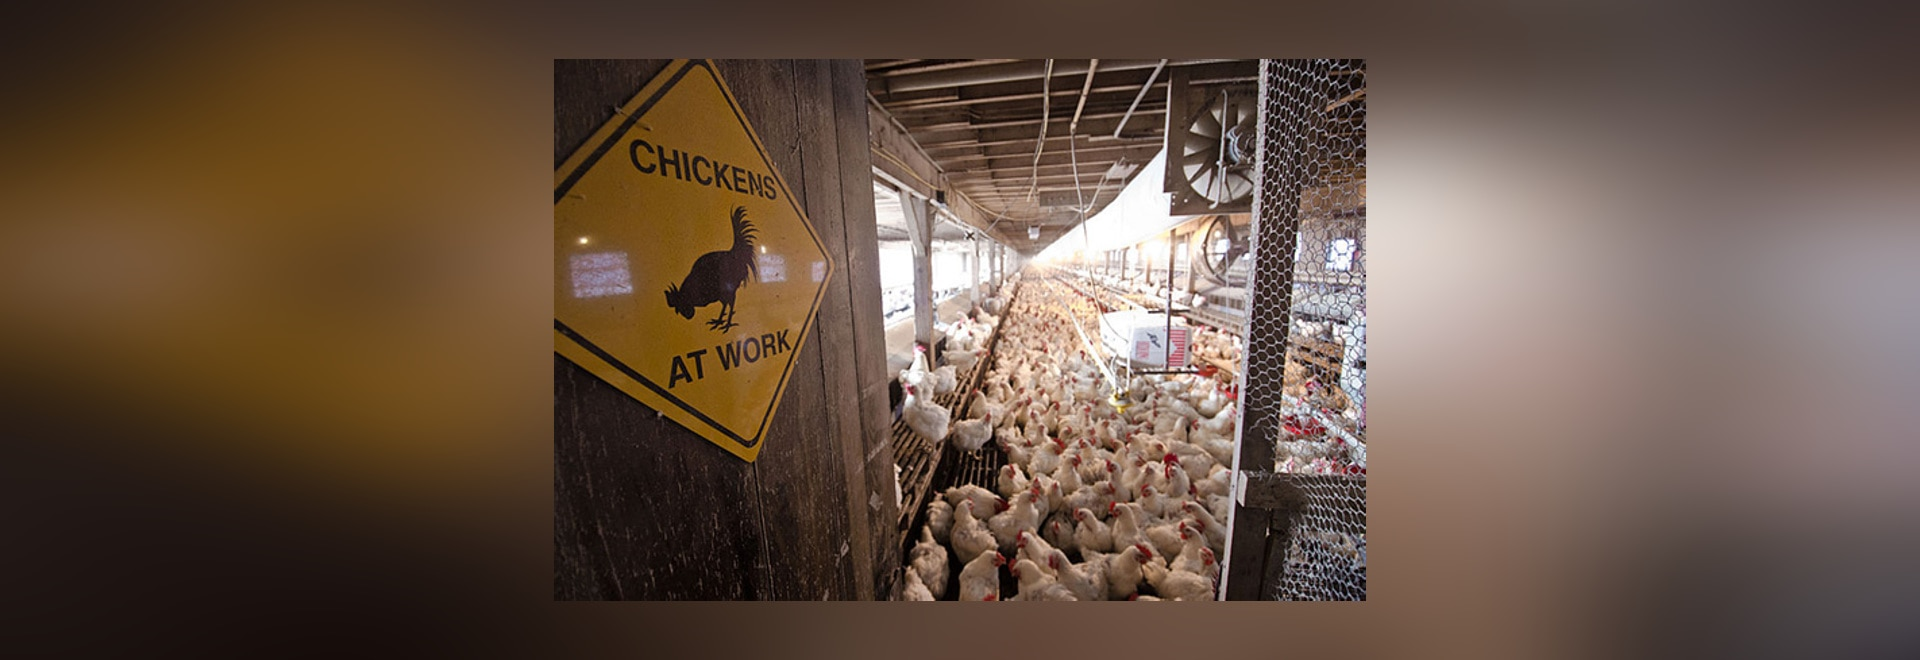 The chickens are kept in an air-chilled environment.